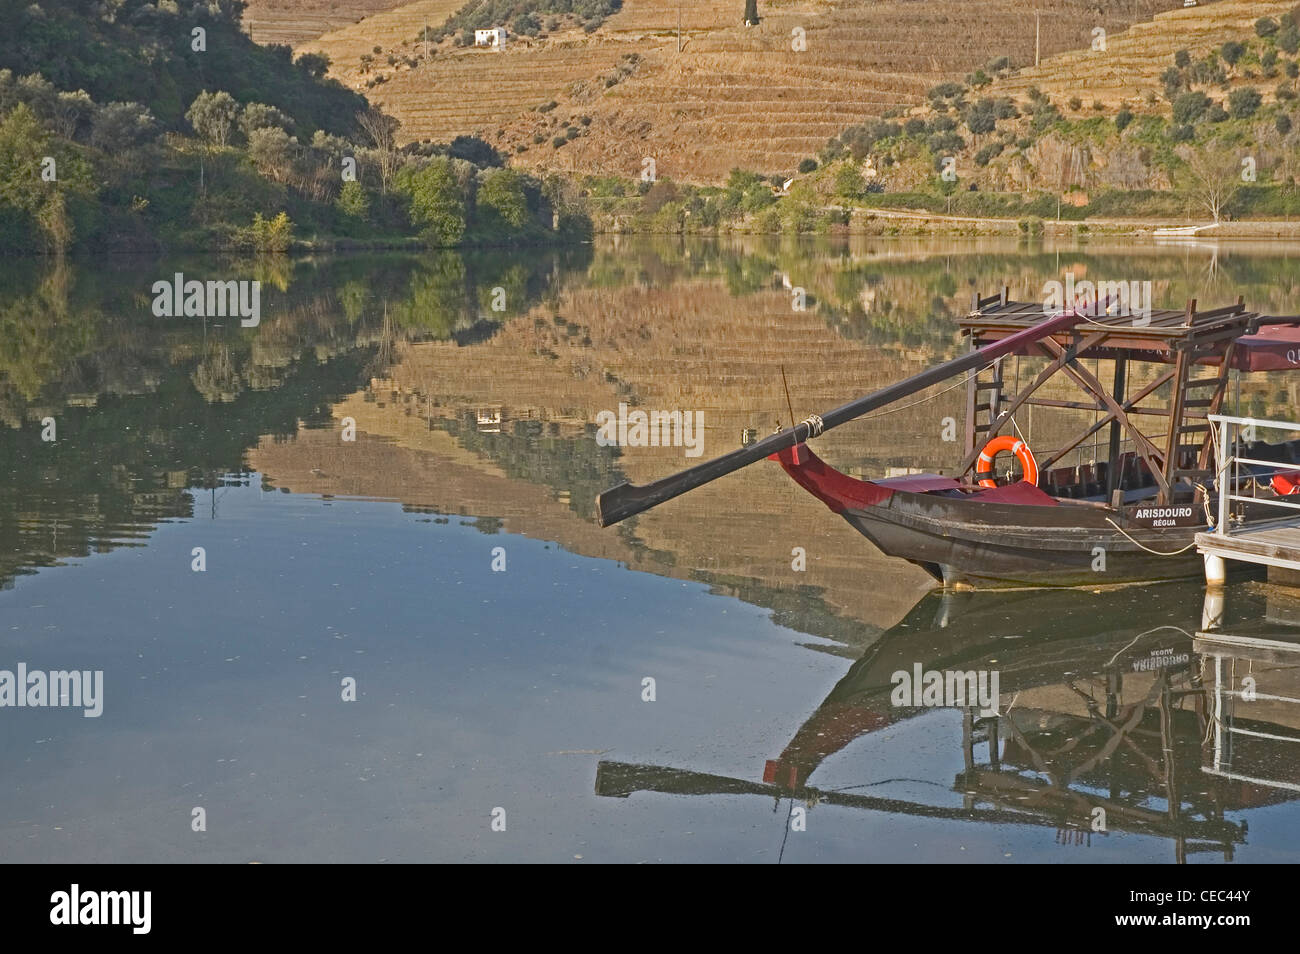 PORTUGAL, River Douro, Pinhao, view on river bank with barca rabelo (traditional boat for transporting port barrels) Stock Photo